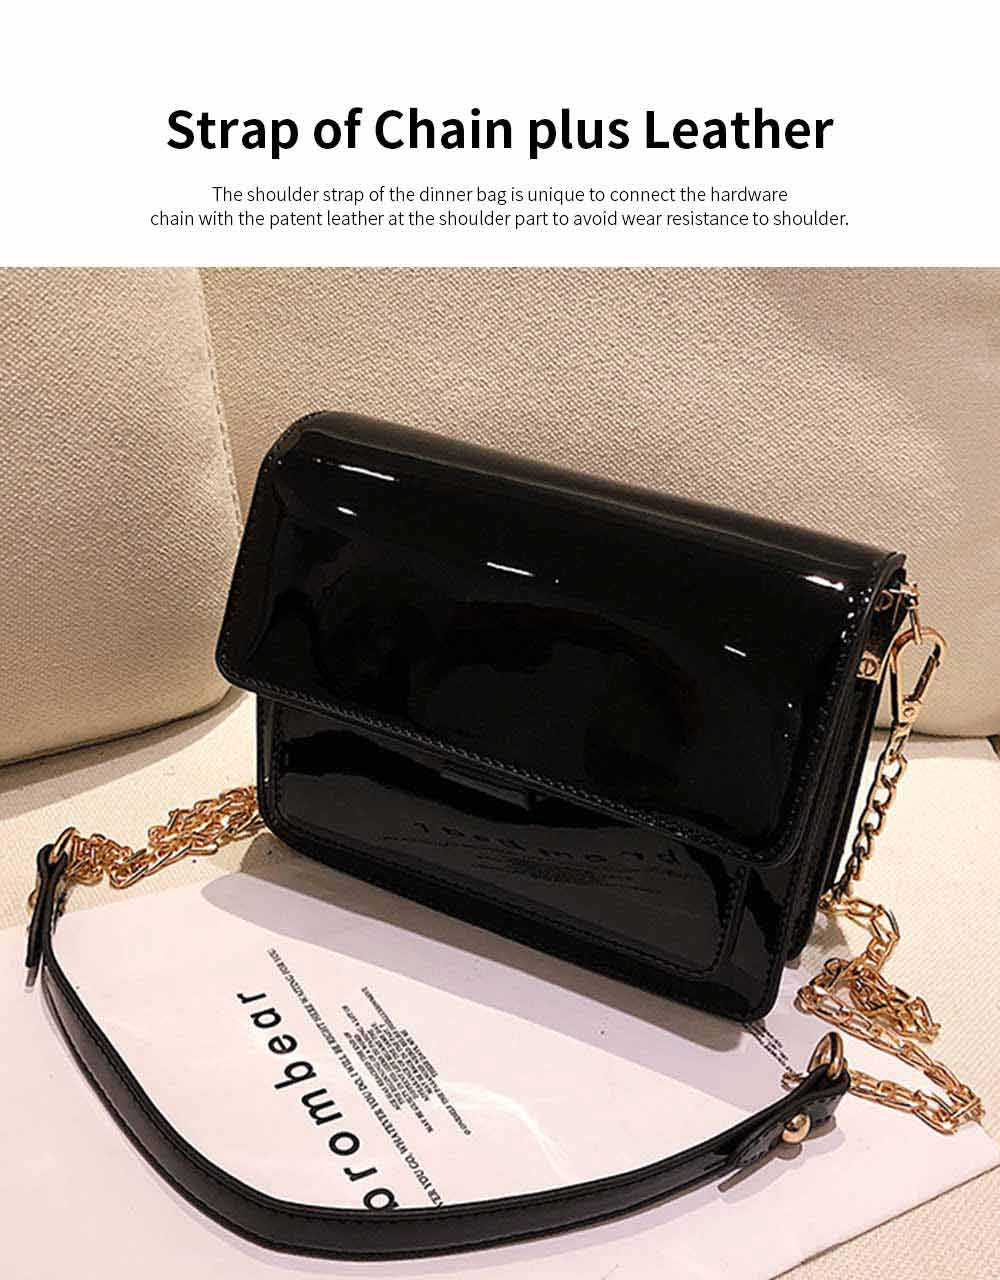 Enameled Leather Women's Dinner Bag with Single Metal Chain Shoulder Strap Hard Antiwear Large Capacity Evening Handbag for Women 5